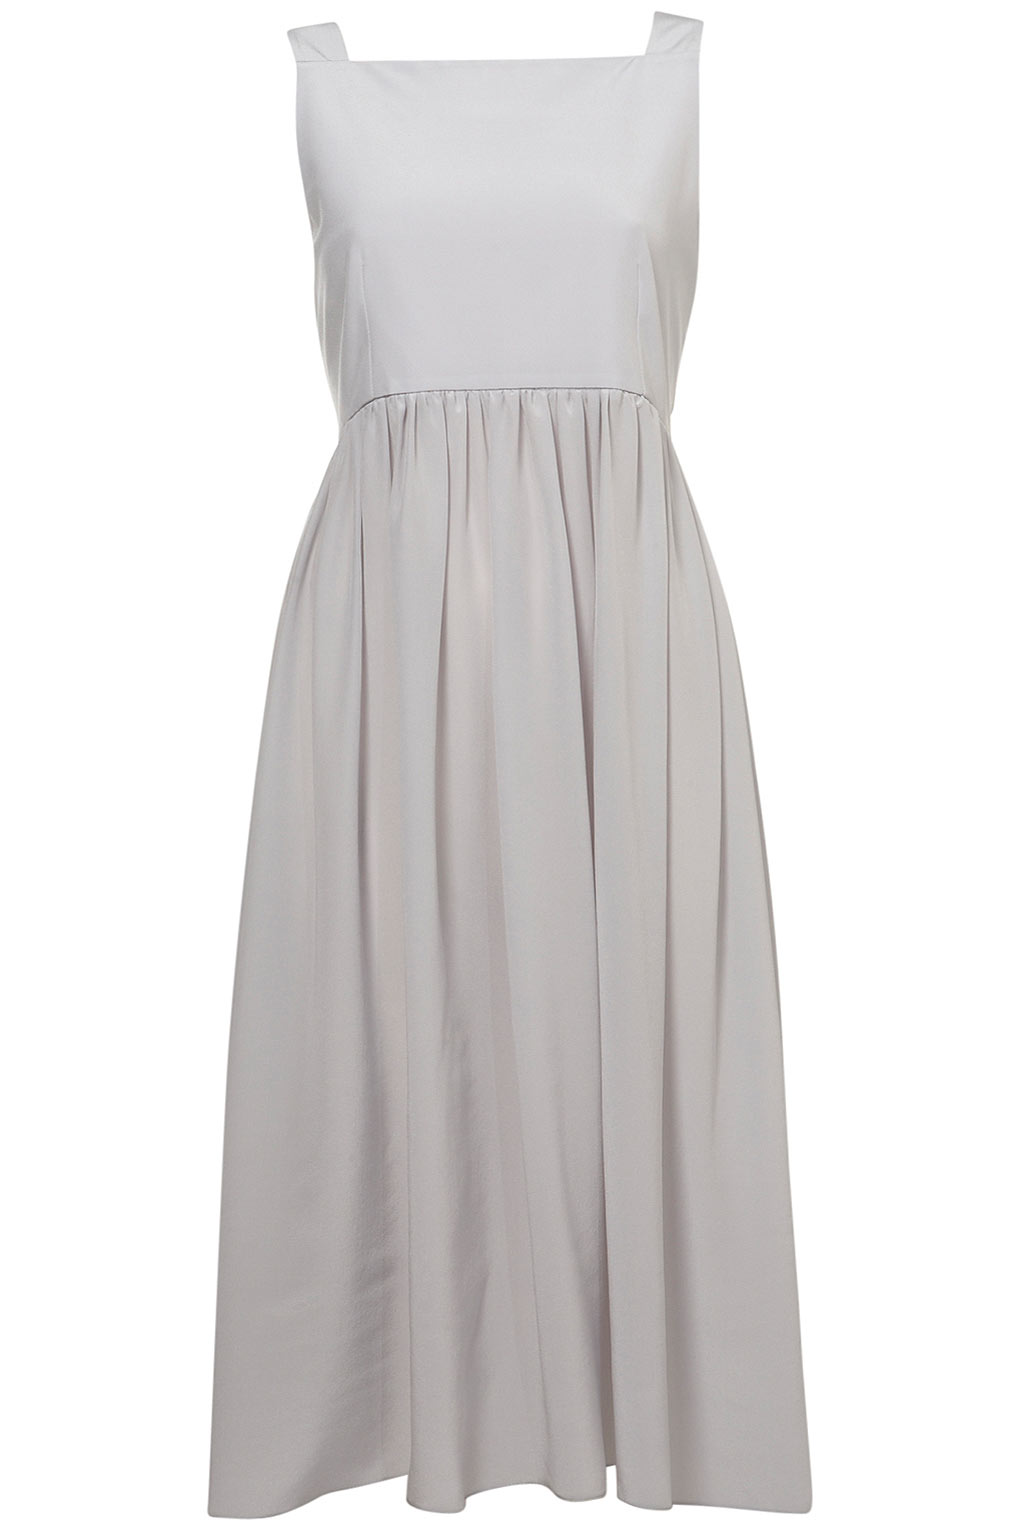 TOPSHOP Amish Pini Dress By Boutique in Light Grey (Gray